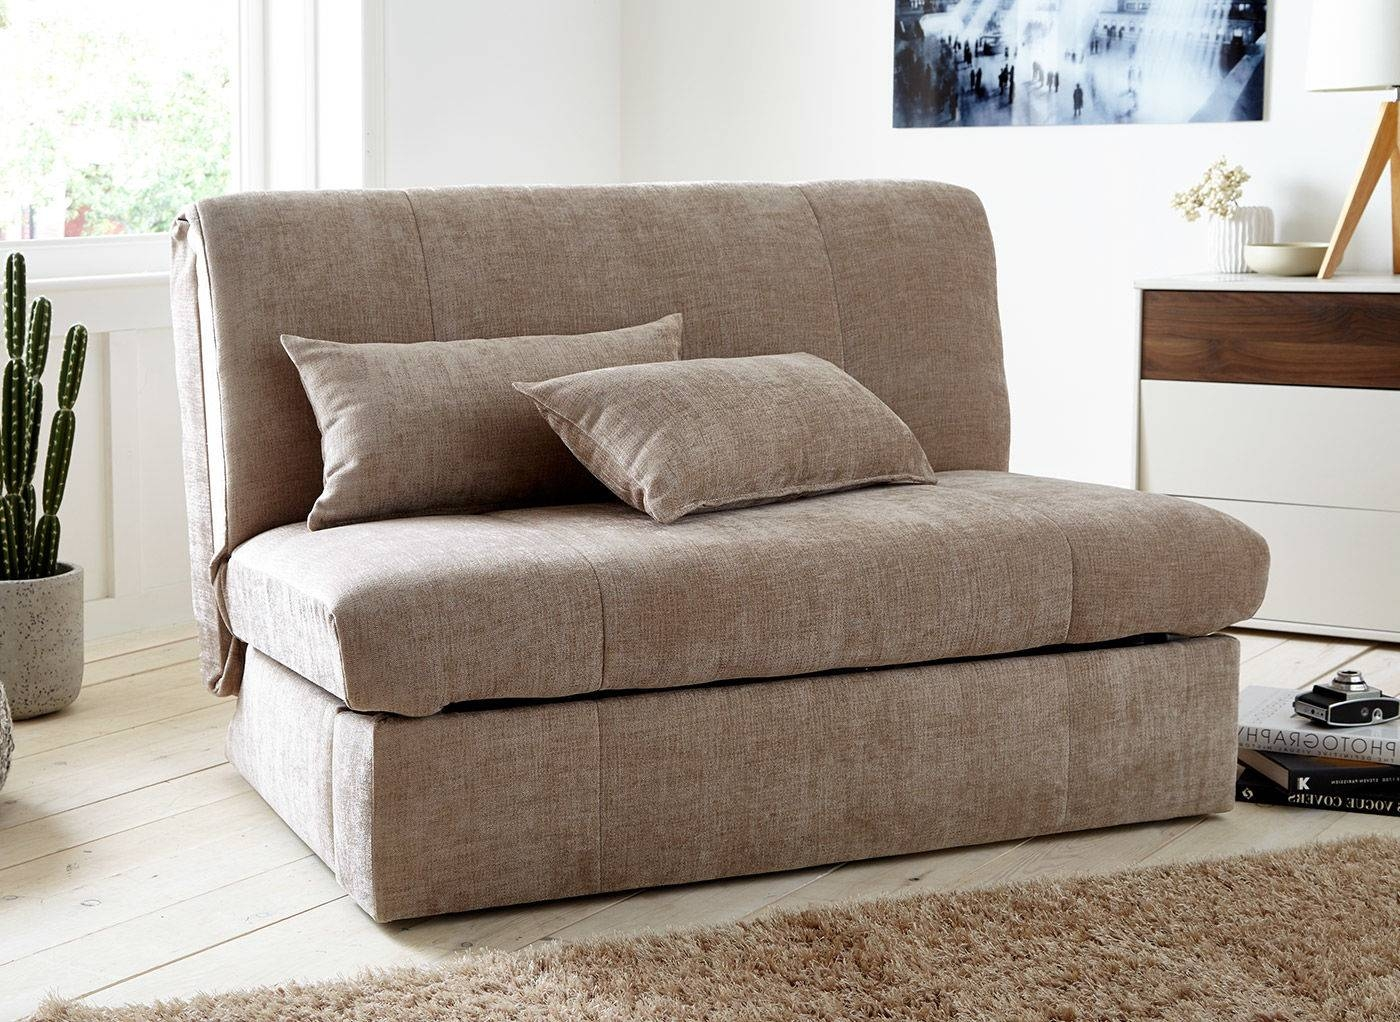 Popular Photo of Sofa Beds